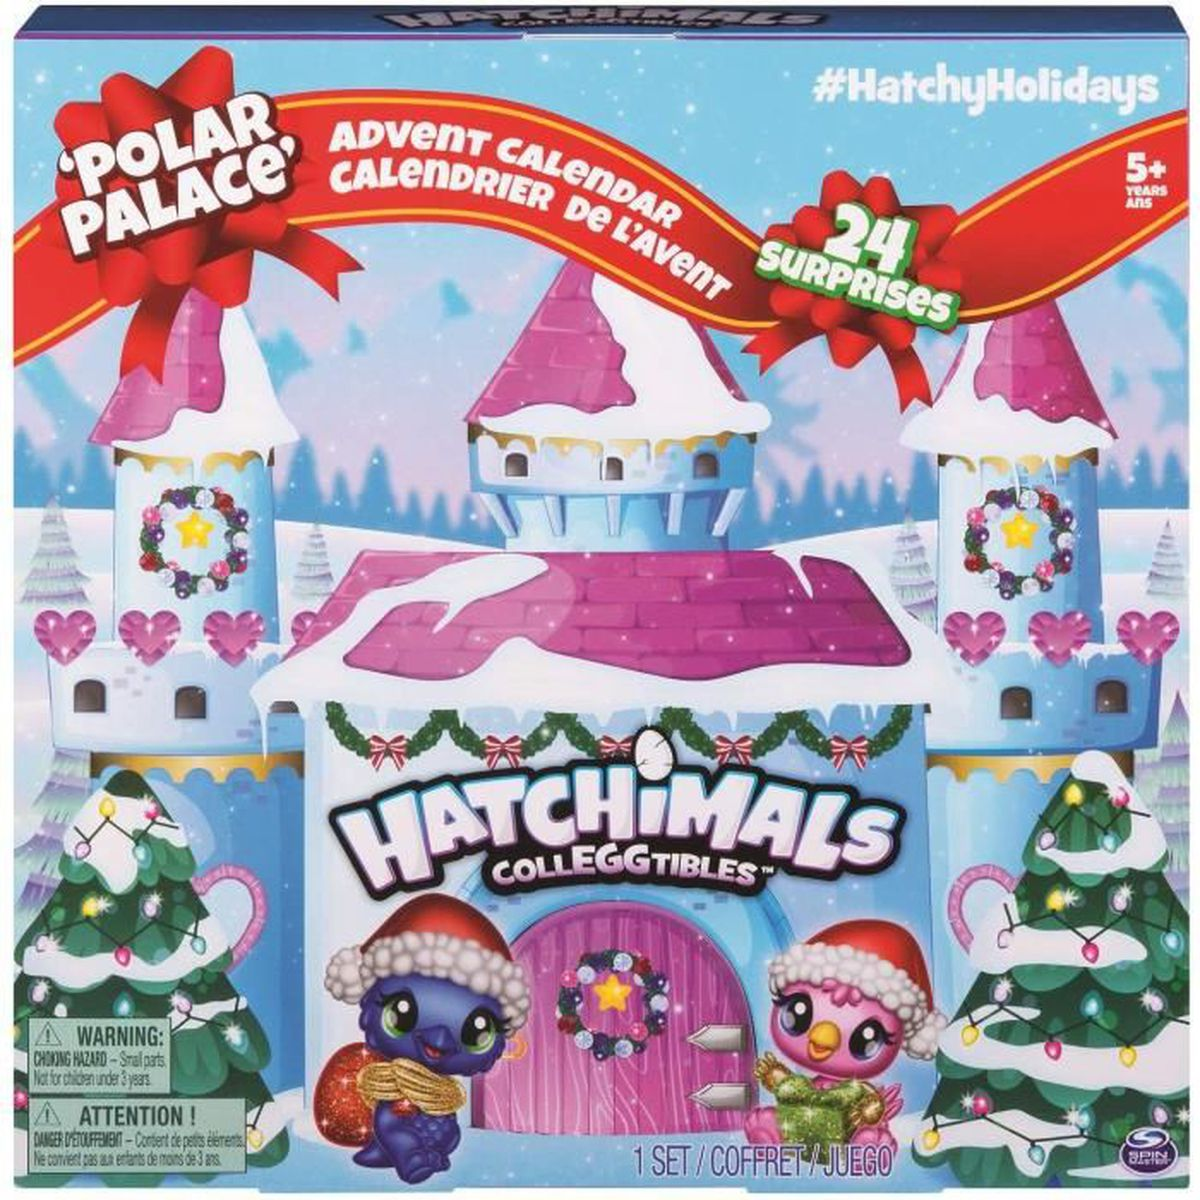 Hatchimals Colleggtibles – 6044284 – Calendrier de l'Avent